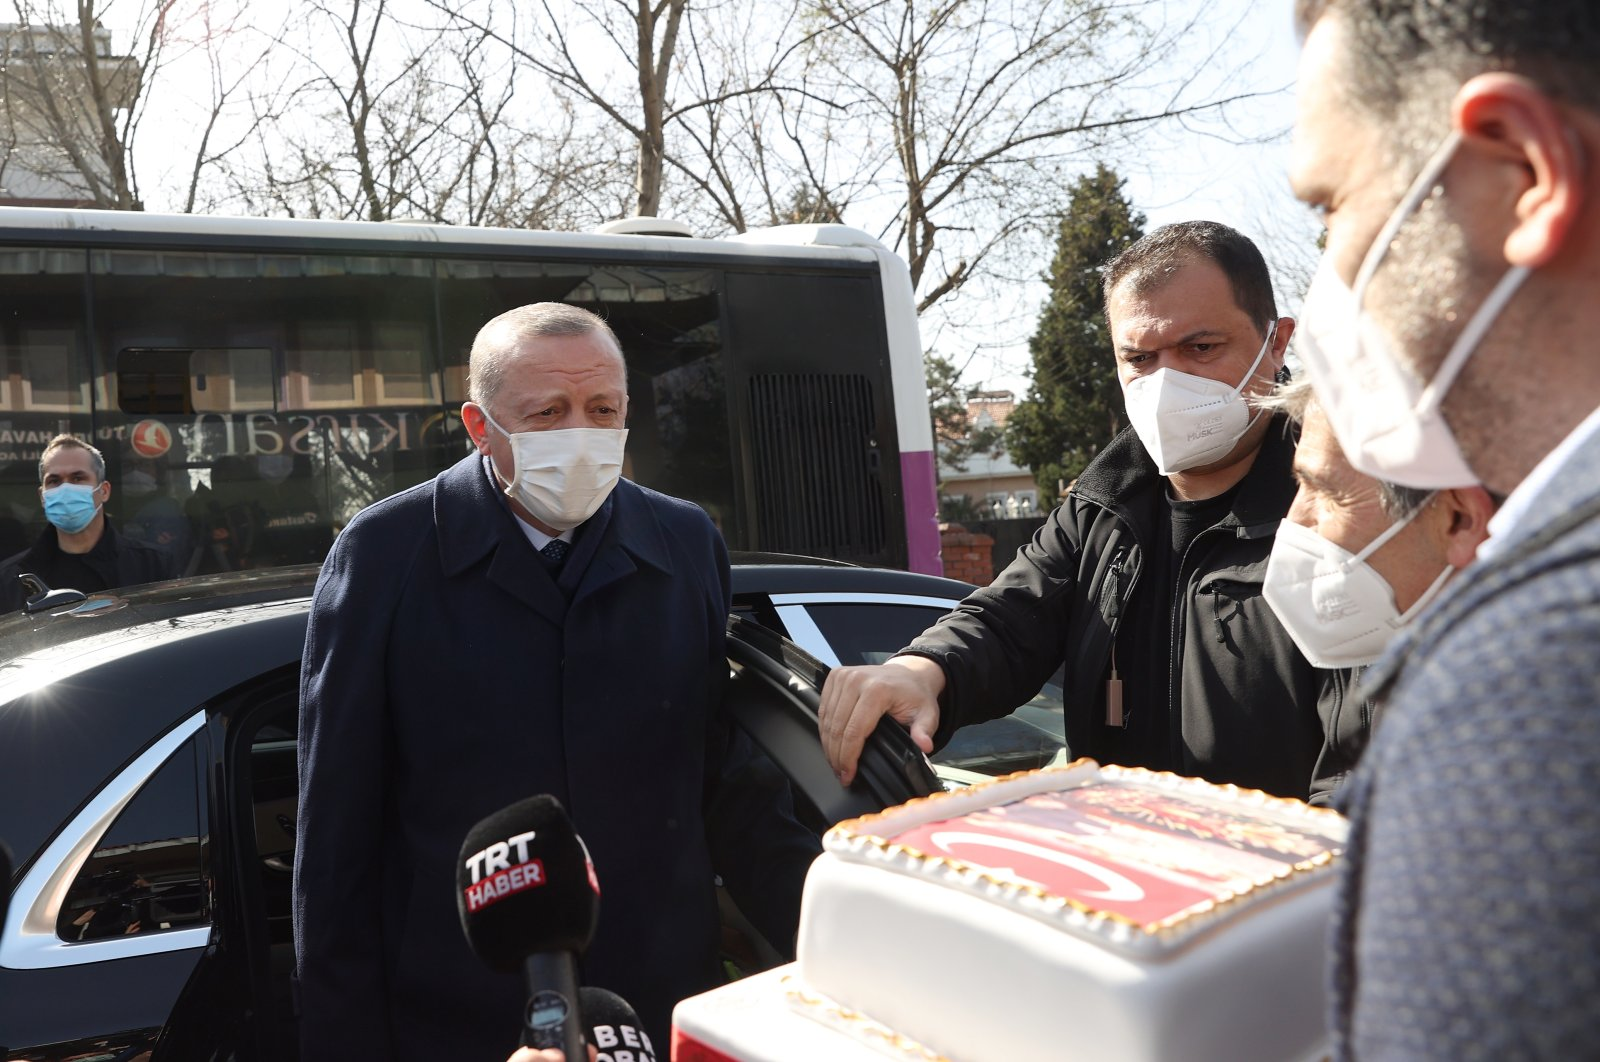 President Recep Tayyip Erdoğan cutting a cake that was given by residents close to his home, Feb. 26, 2021. (AA Photo)